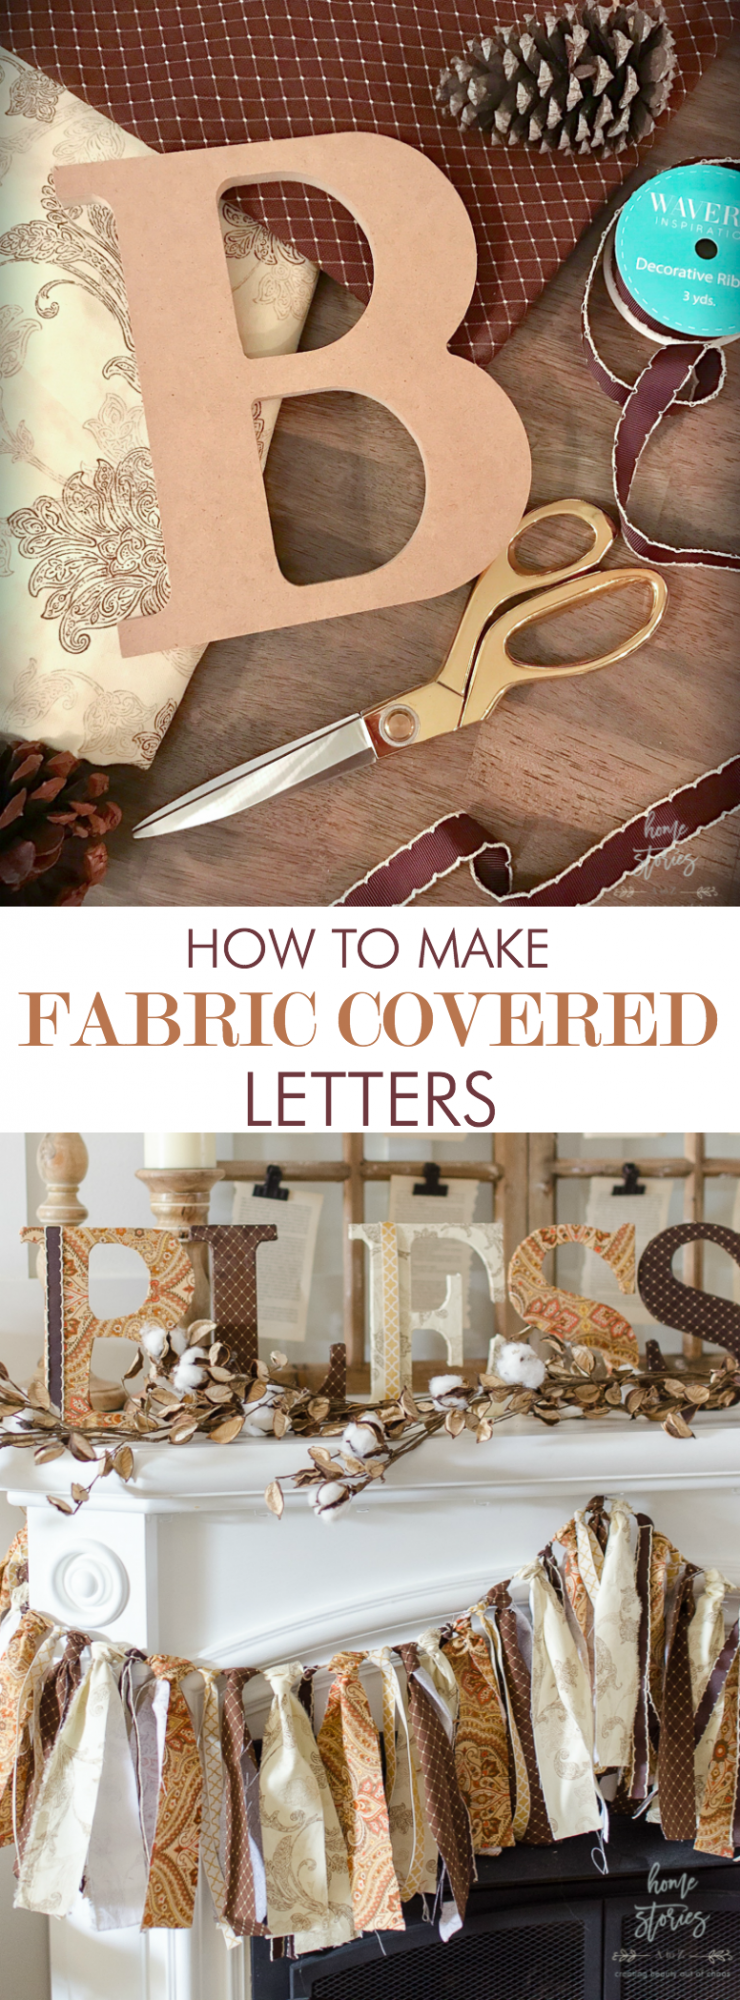 How to Make Fabric Covered Letters {Mod Podge Tutorial}